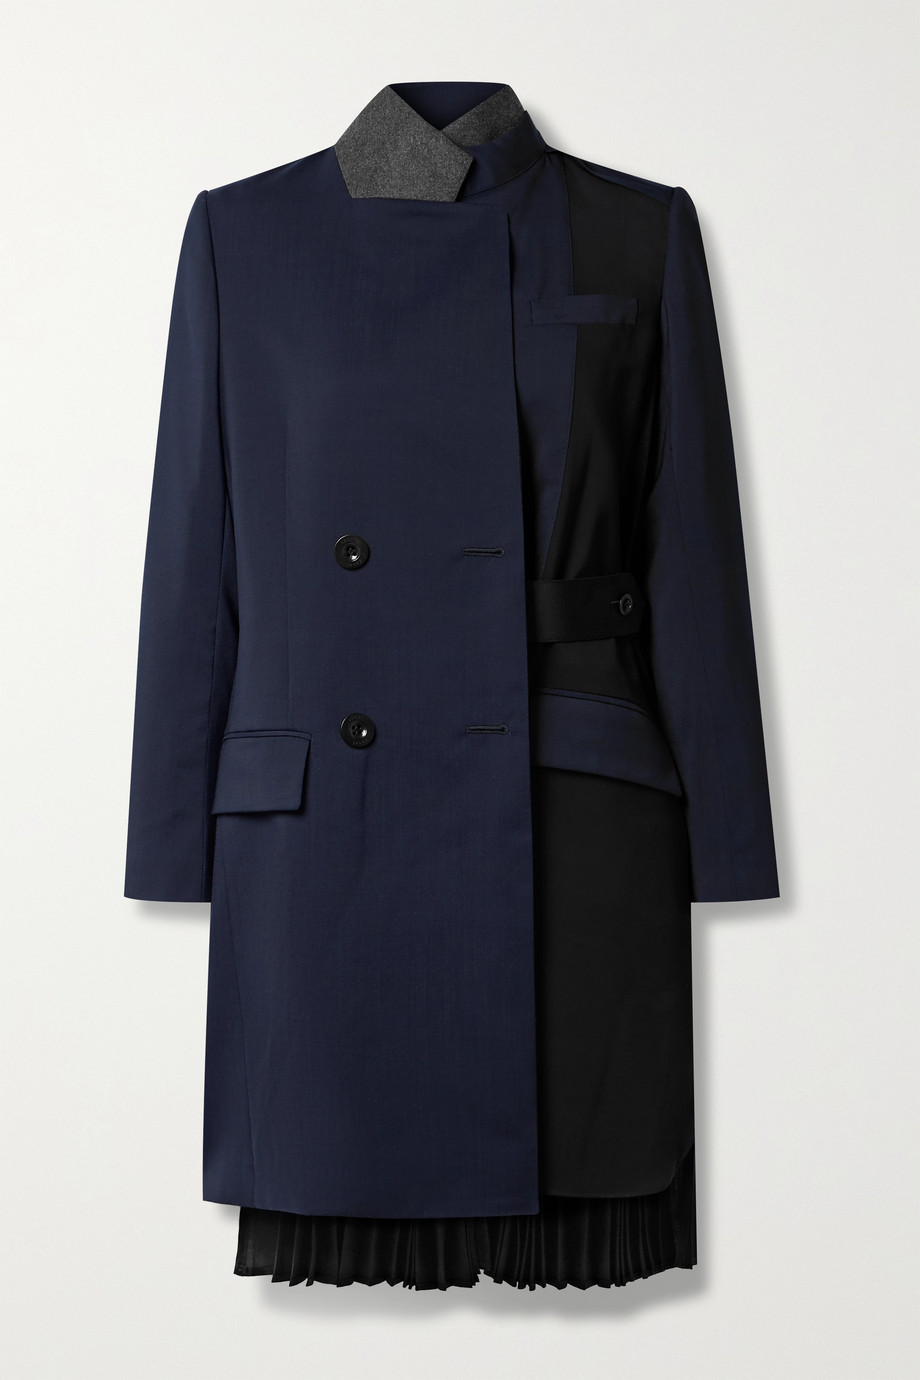 Sacai Paneled grain de poudre and pleated wool jacket